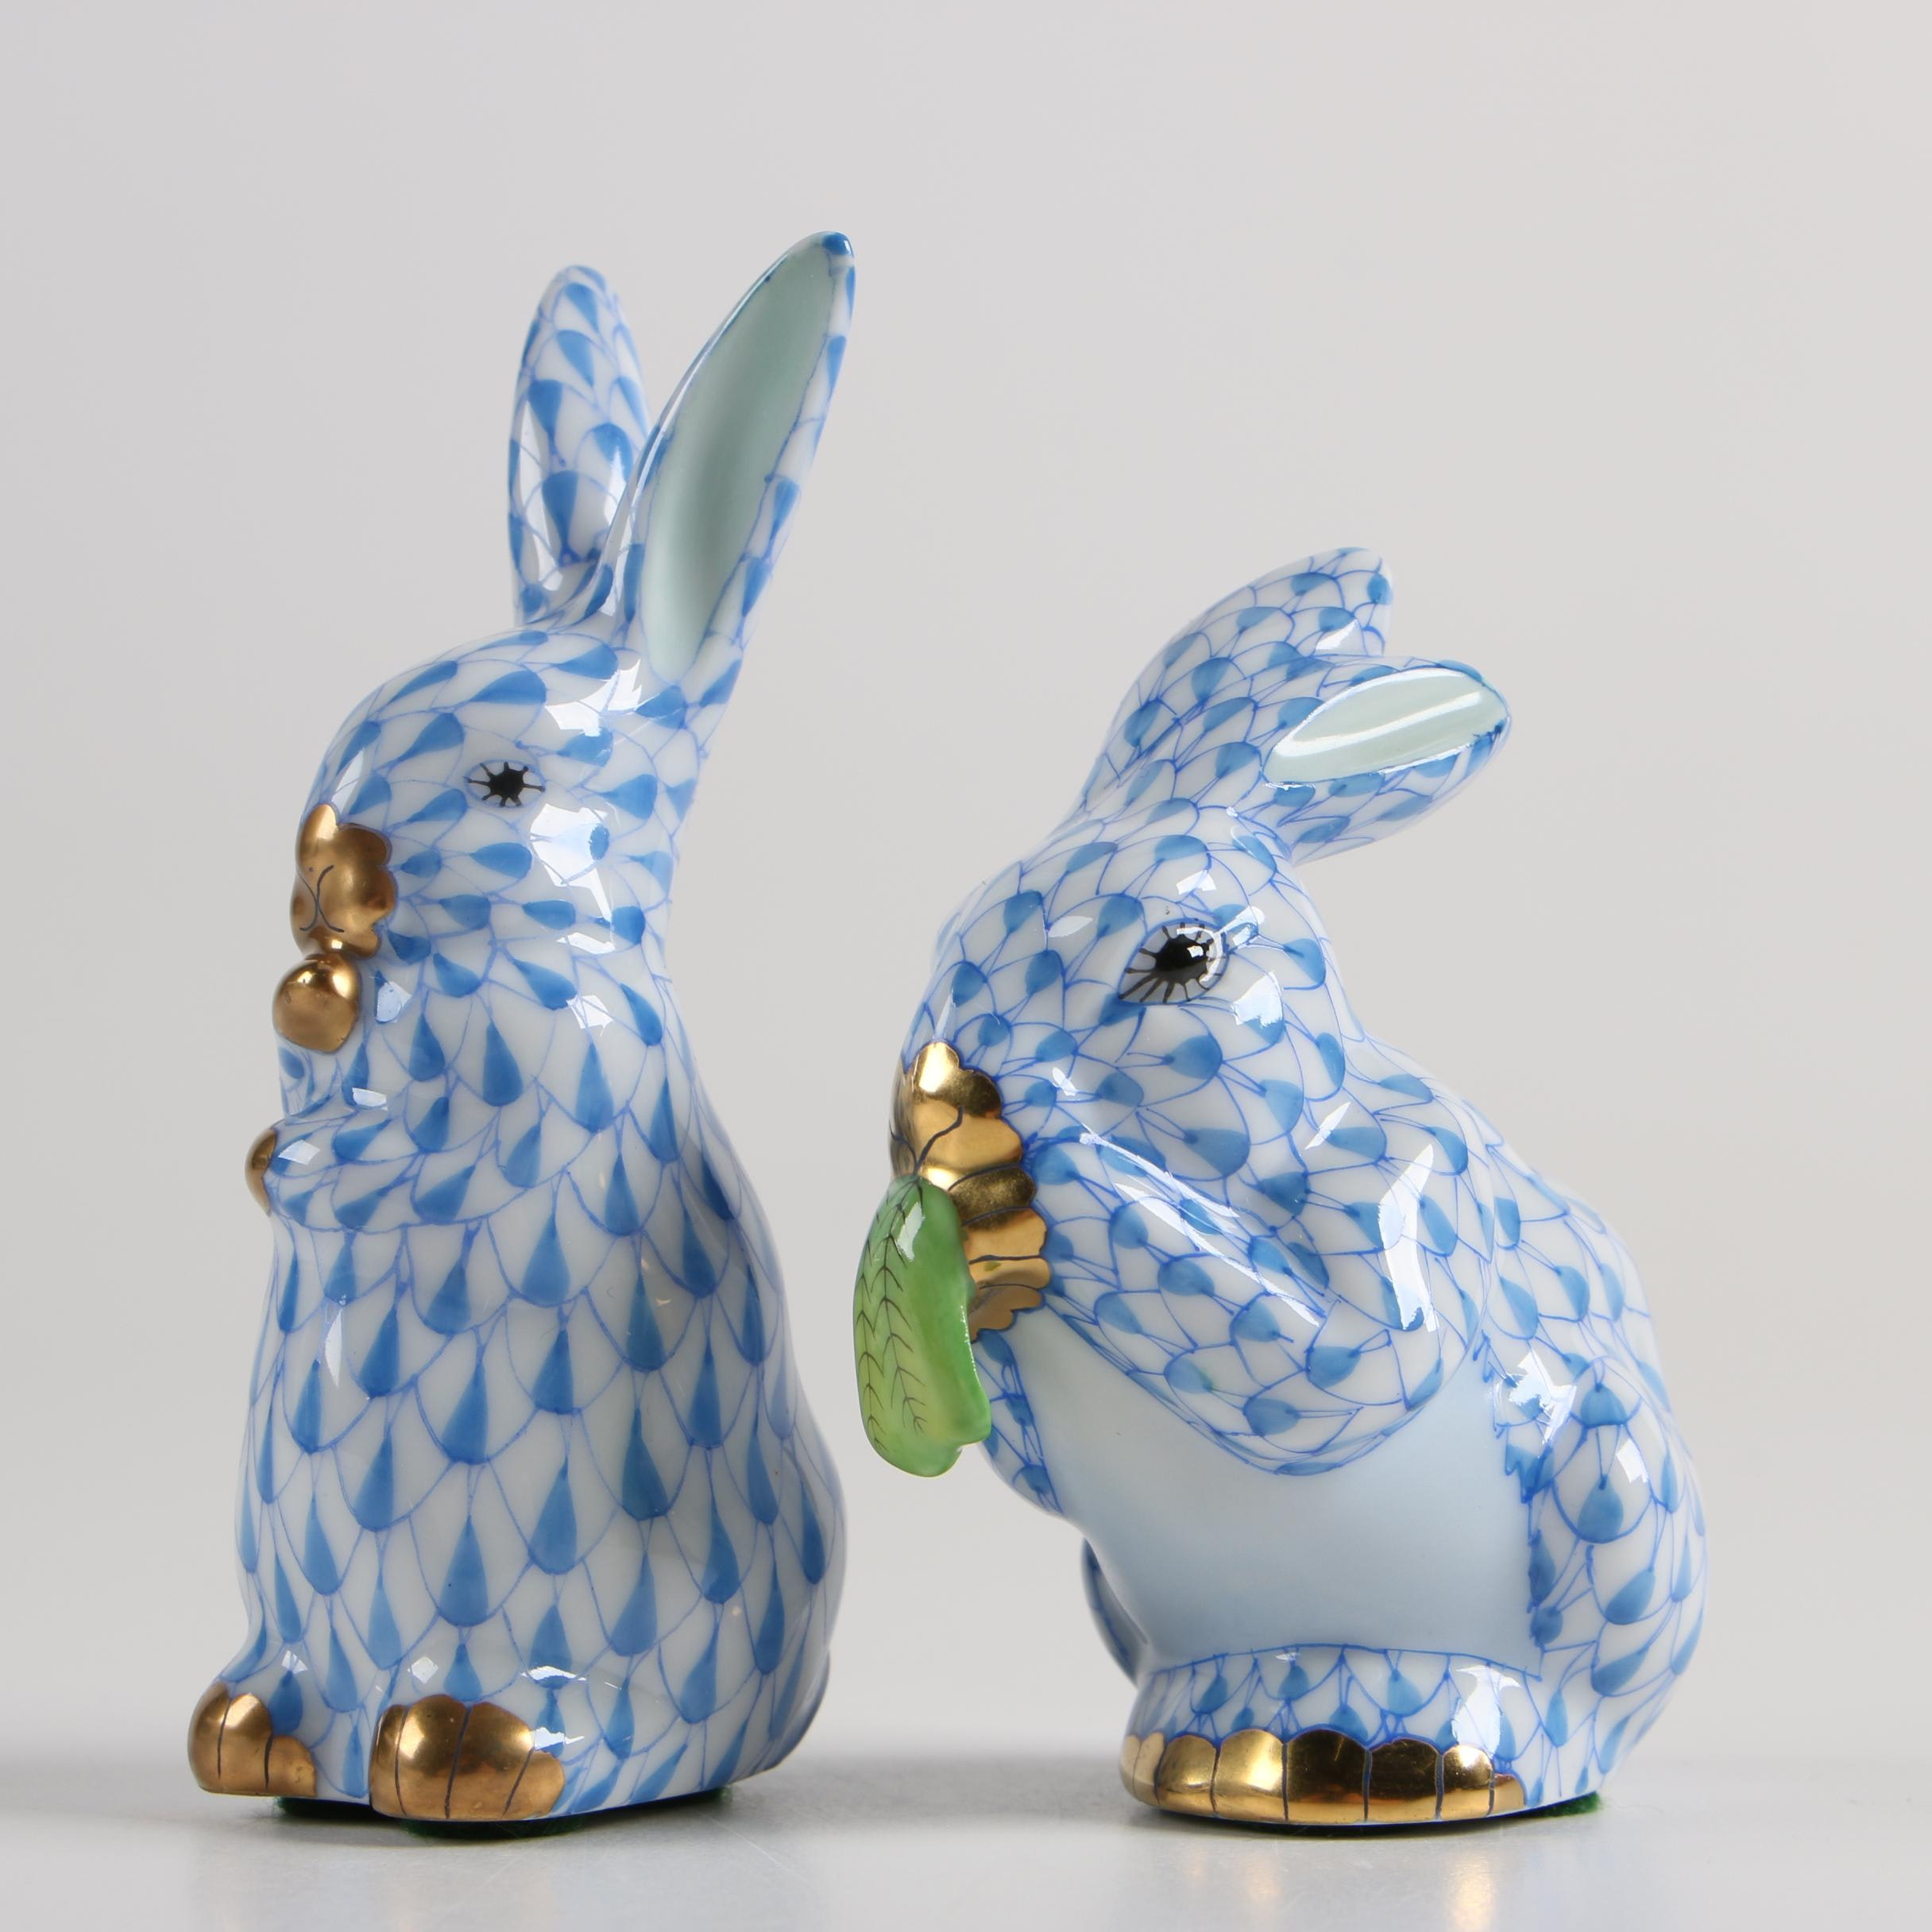 Herend Hungary Hand-Painted Porcelain Rabbit Figurines